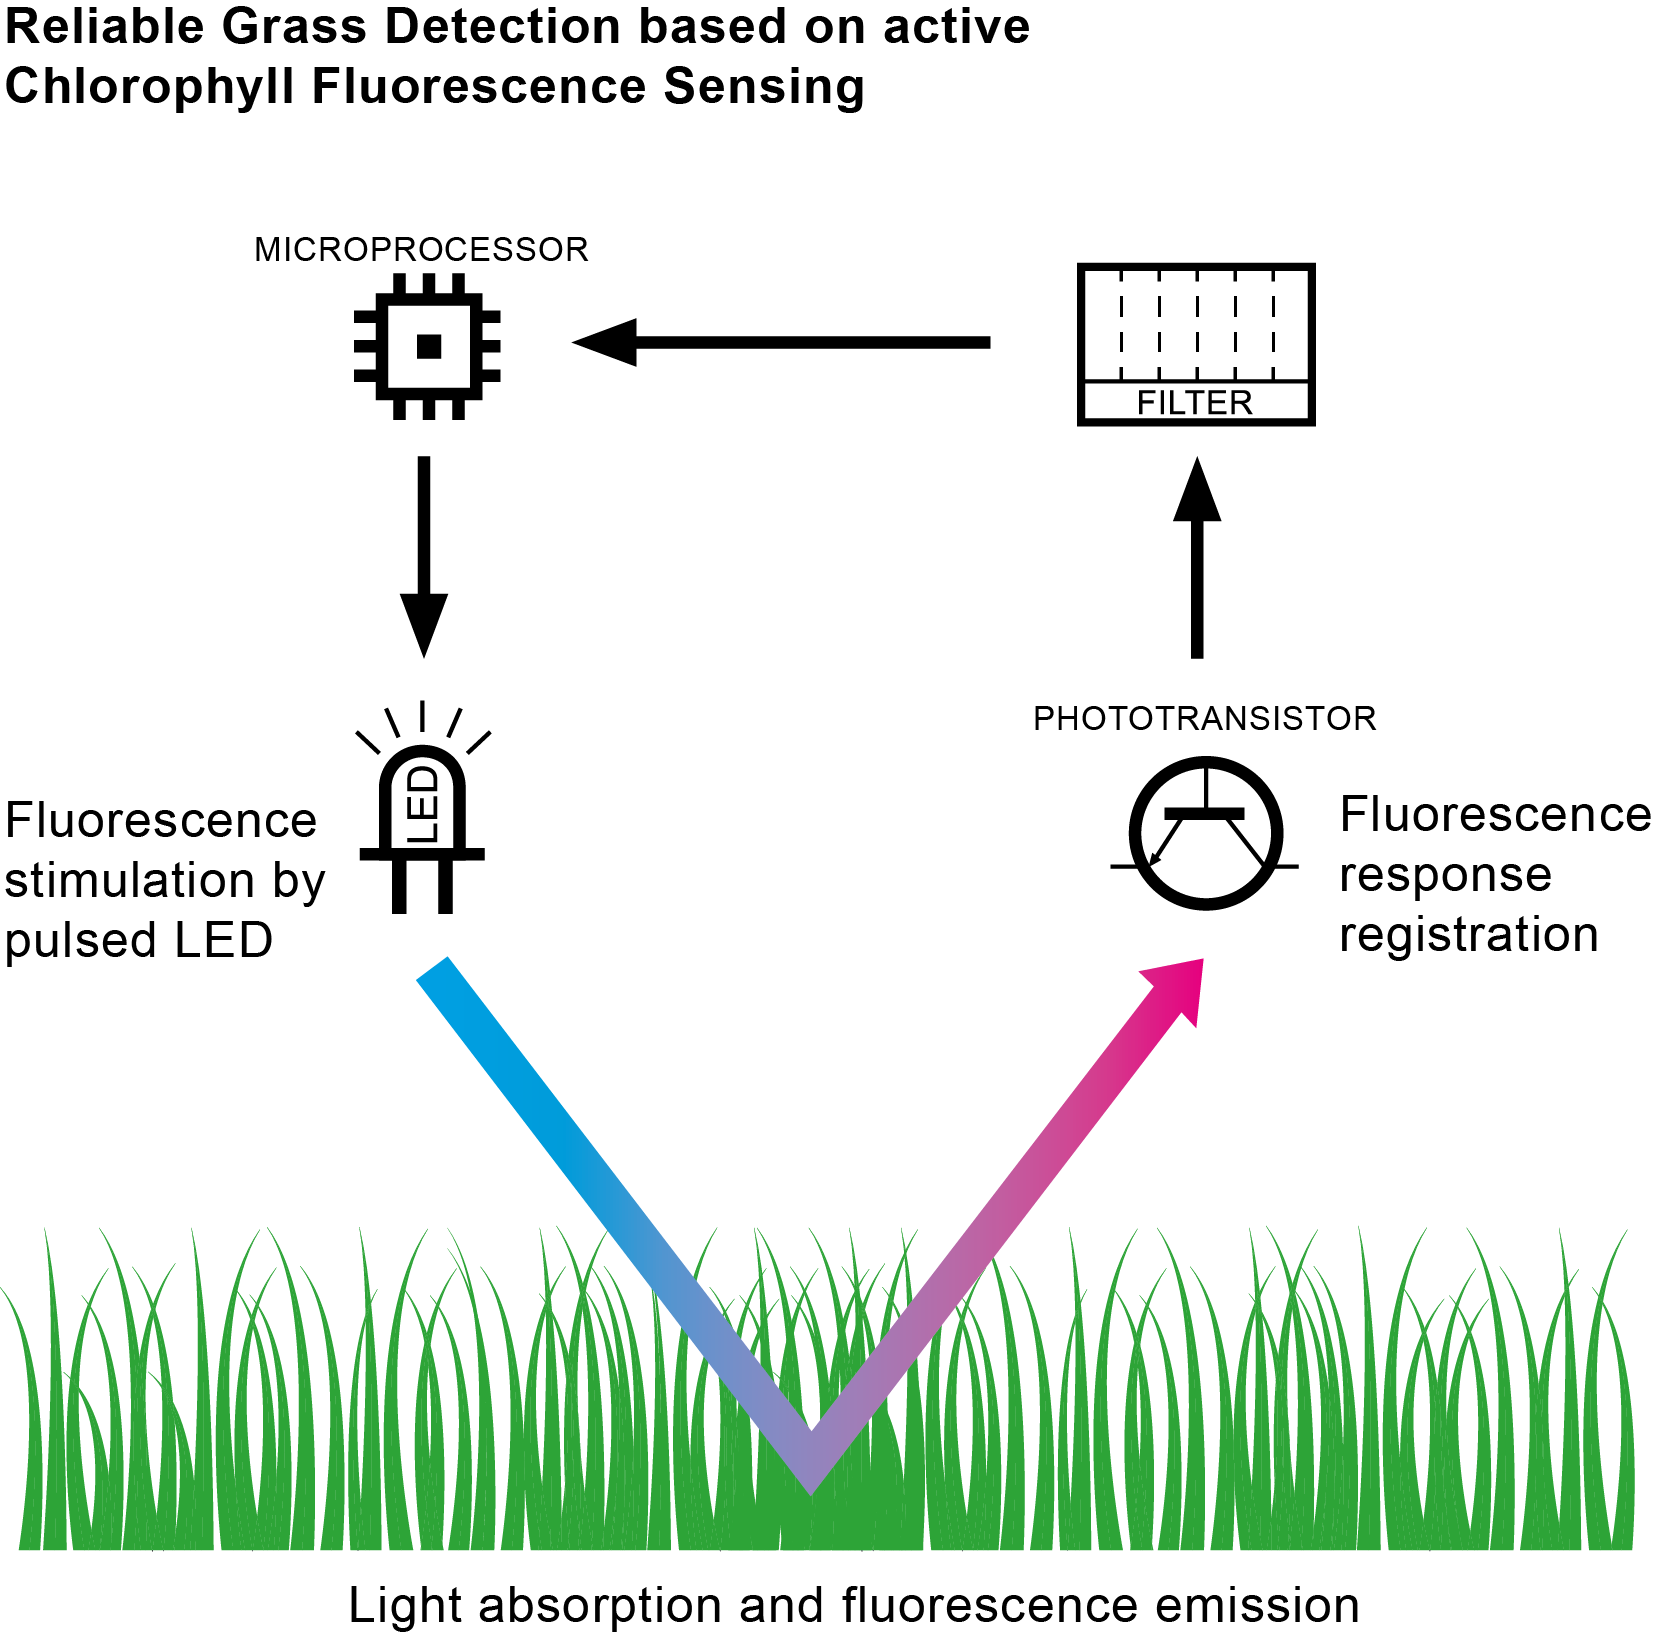 A novel Chlorophyll Fluorescence based approach for Mowing Area Classification